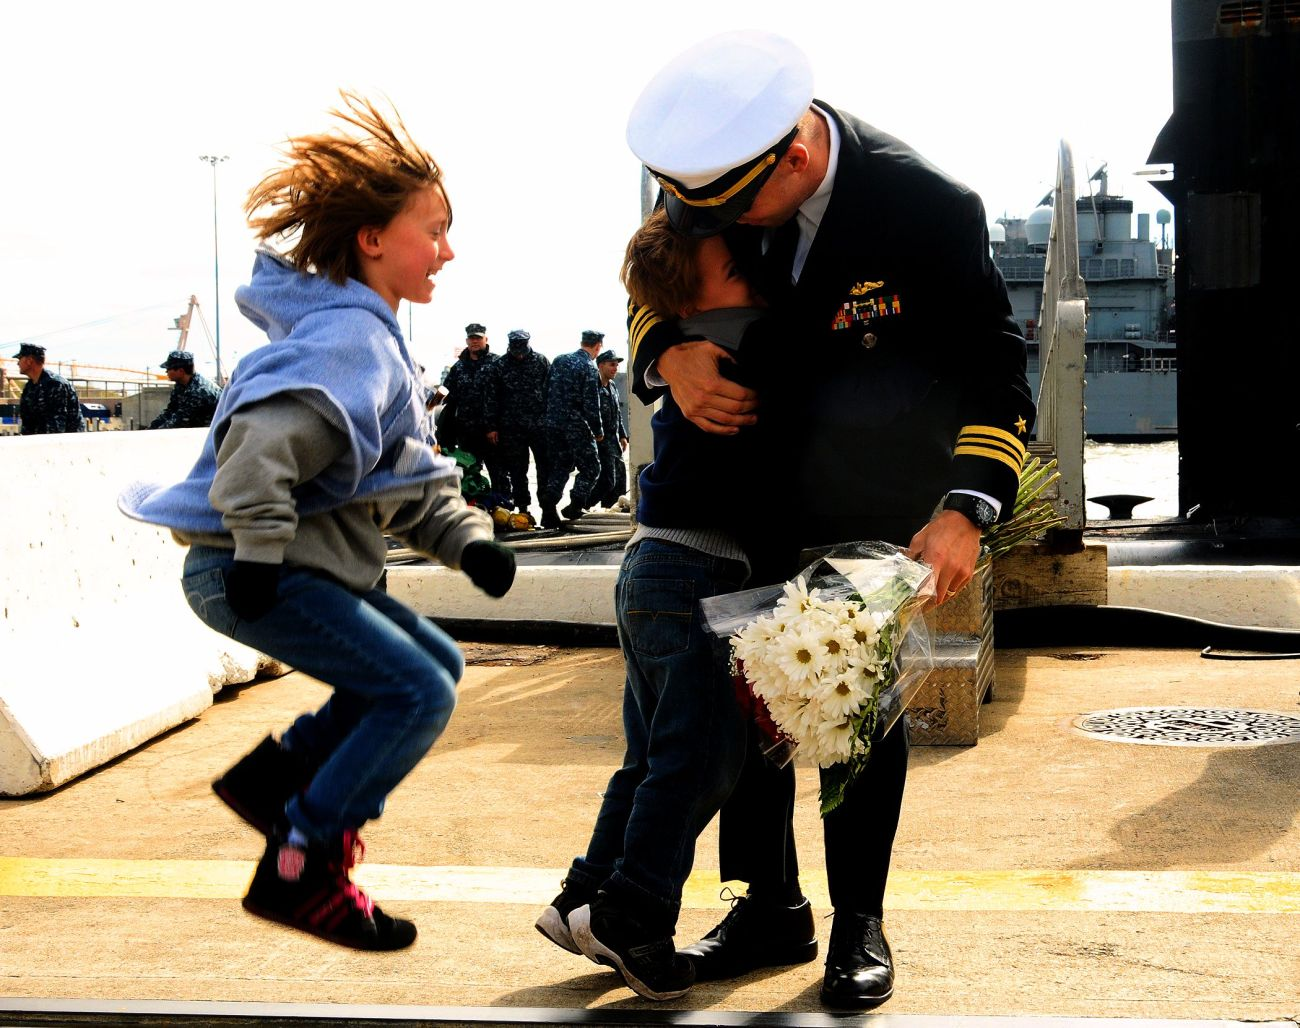 121103-N-EP471-023 Norfolk, Va. (Nov. 3, 2012) – Two young children welcome home their father and the crew of the Los Angeles-class attack submarine USS Norfolk (SSN 714) from a six- month deployment at Naval Station Norfolk, Va. Nov. 3. Commanded by Cmdr. Greg Zettler, Norfolk steamed more than 30,000 nautical miles during the deployment and conducted port visits to Haifa, Isreal; Limassol, Cyprus; Bahrain and Diego Garcia. U.S. Navy photo by Mass Communication Specialist 1st Class Kim Williams